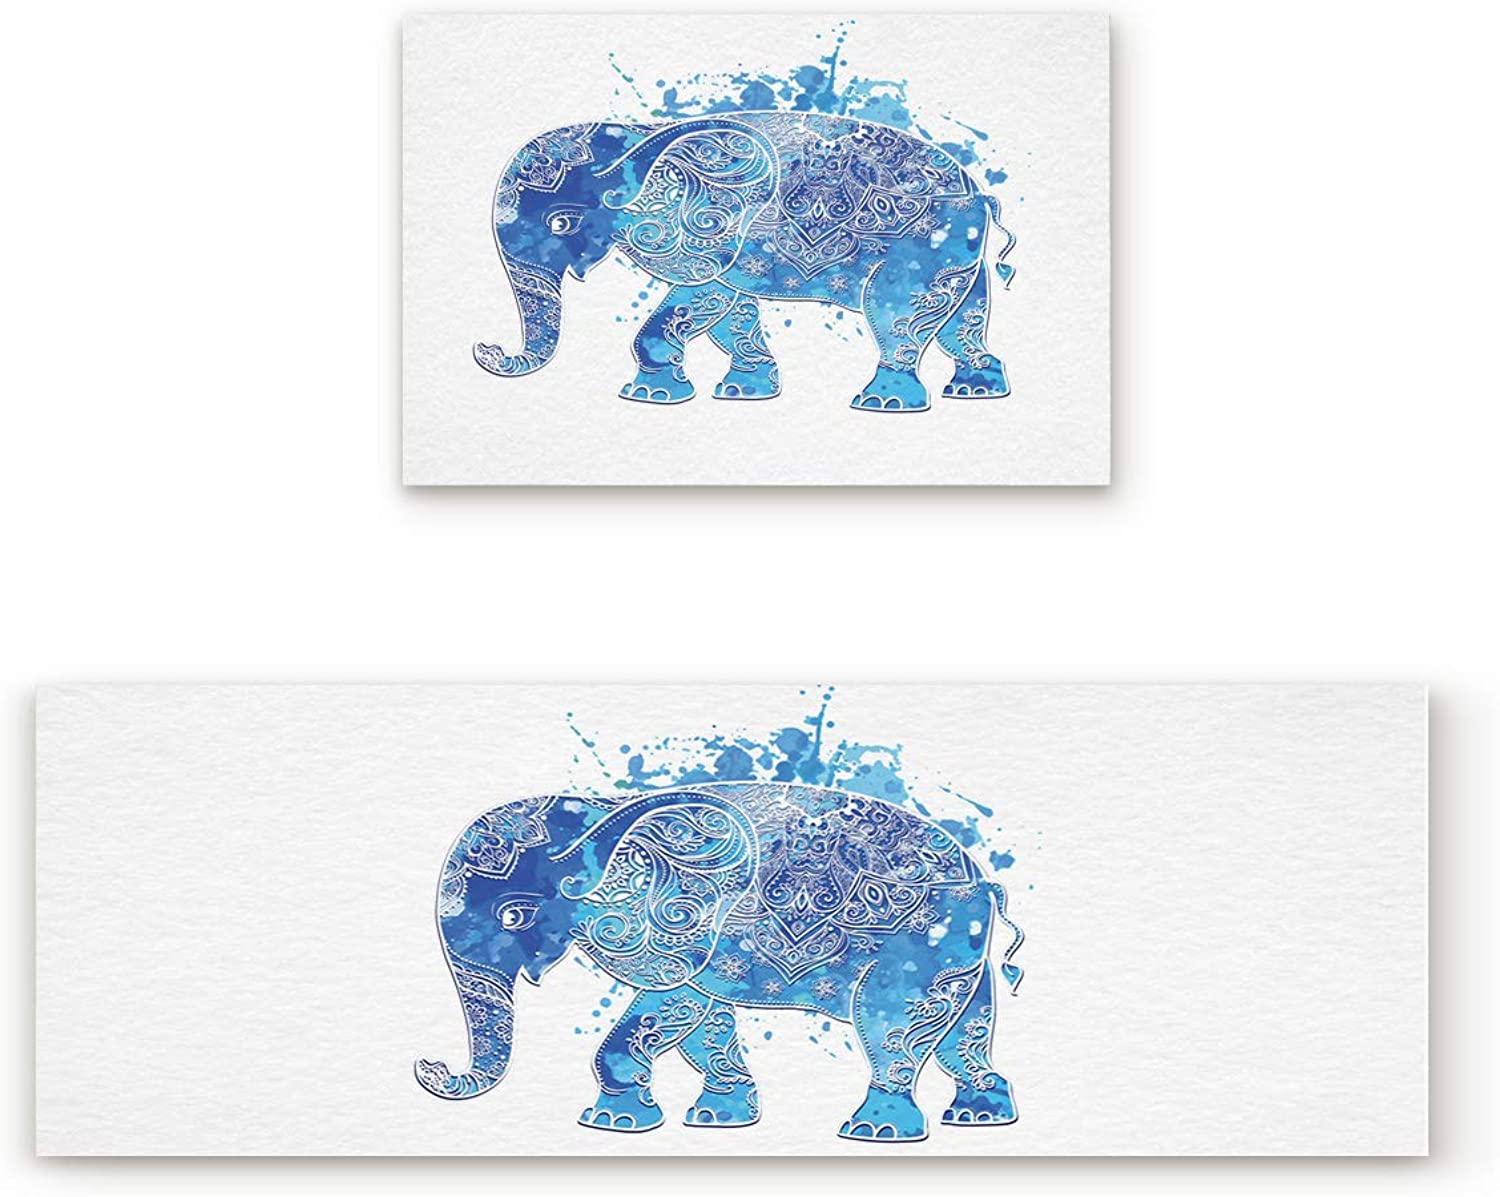 Fantasy Star Kitchen Rugs Sets 2 Piece Floor Mats Mandala Paint Elephant Doormat Non-Slip Rubber Backing Area Rugs Washable Carpet Inside Door Mat Pad Sets (19.7  x 31.5 +19.7  x 63 )